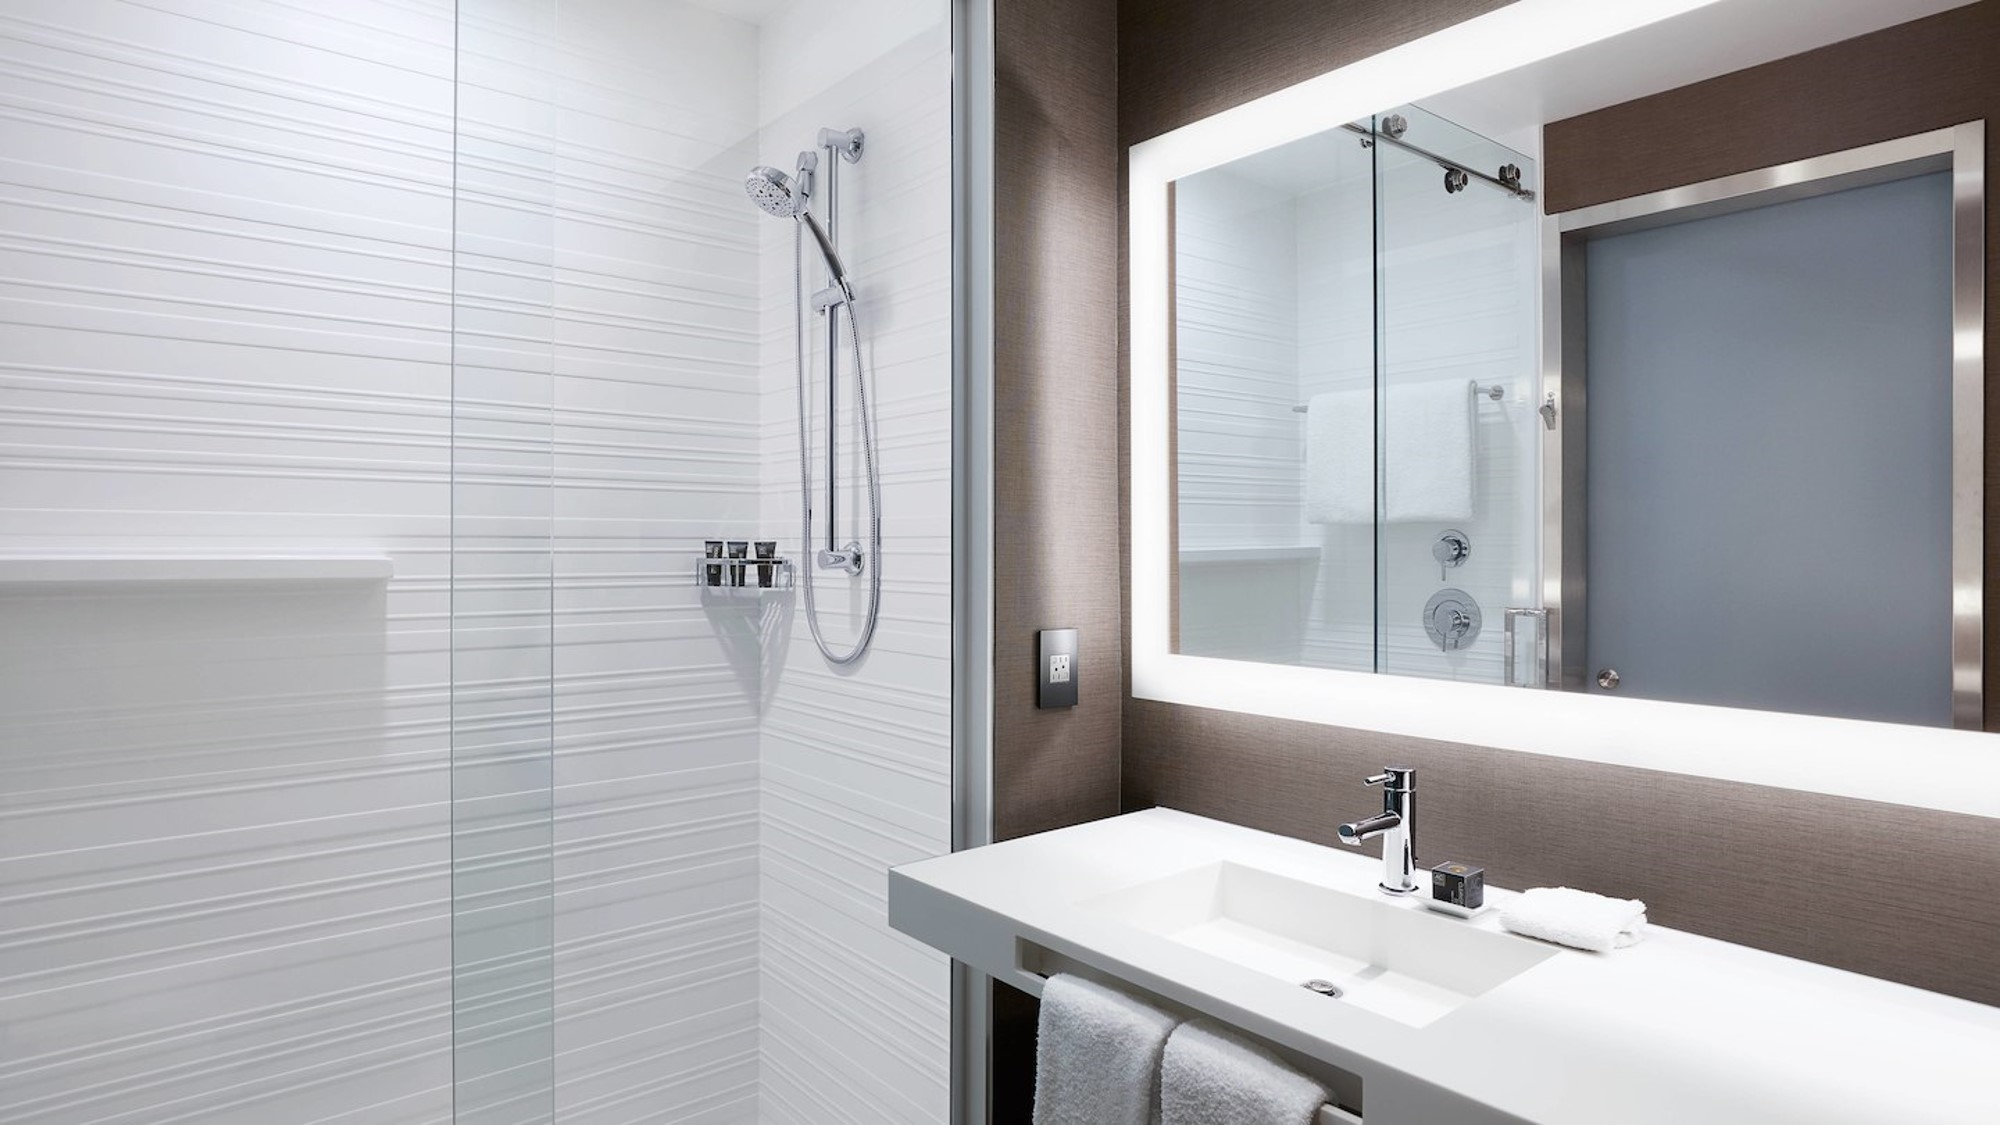 Guest bathroom in the AC by Marriott in St. Louis Park, MN